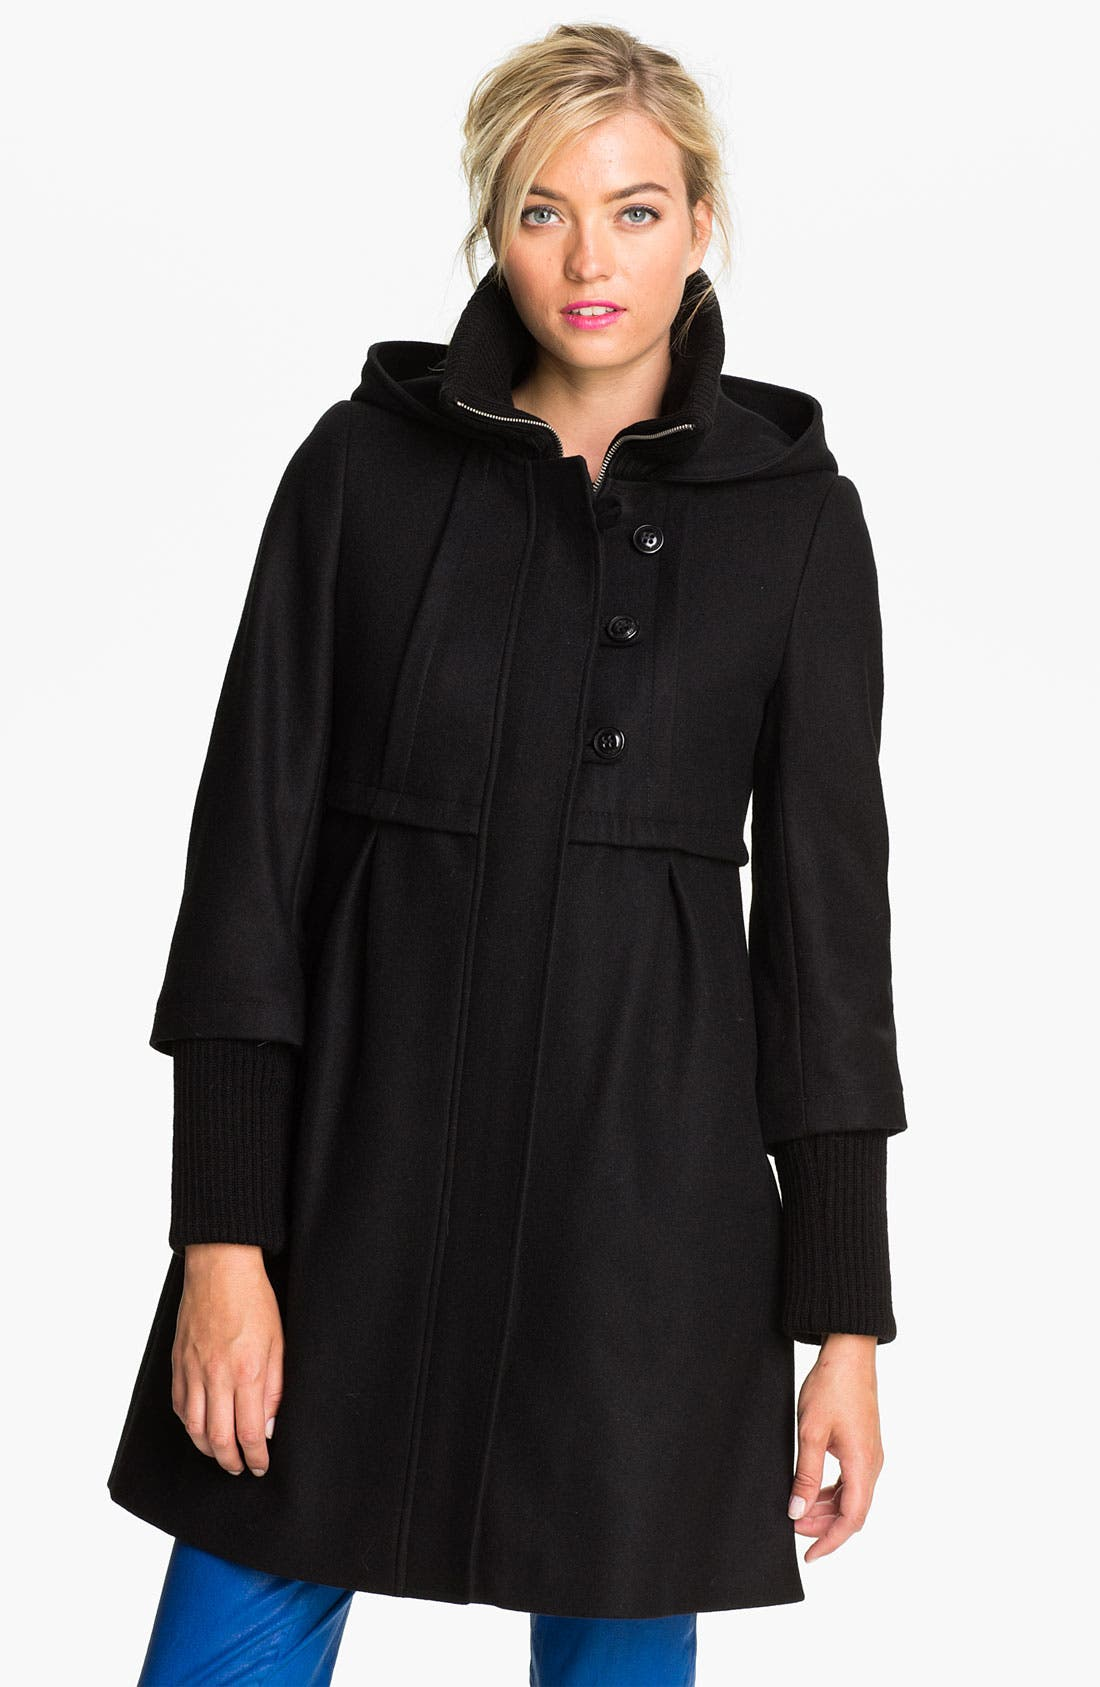 Main Image - DKNY 'Bethany' Knit Inset Wool Blend Coat